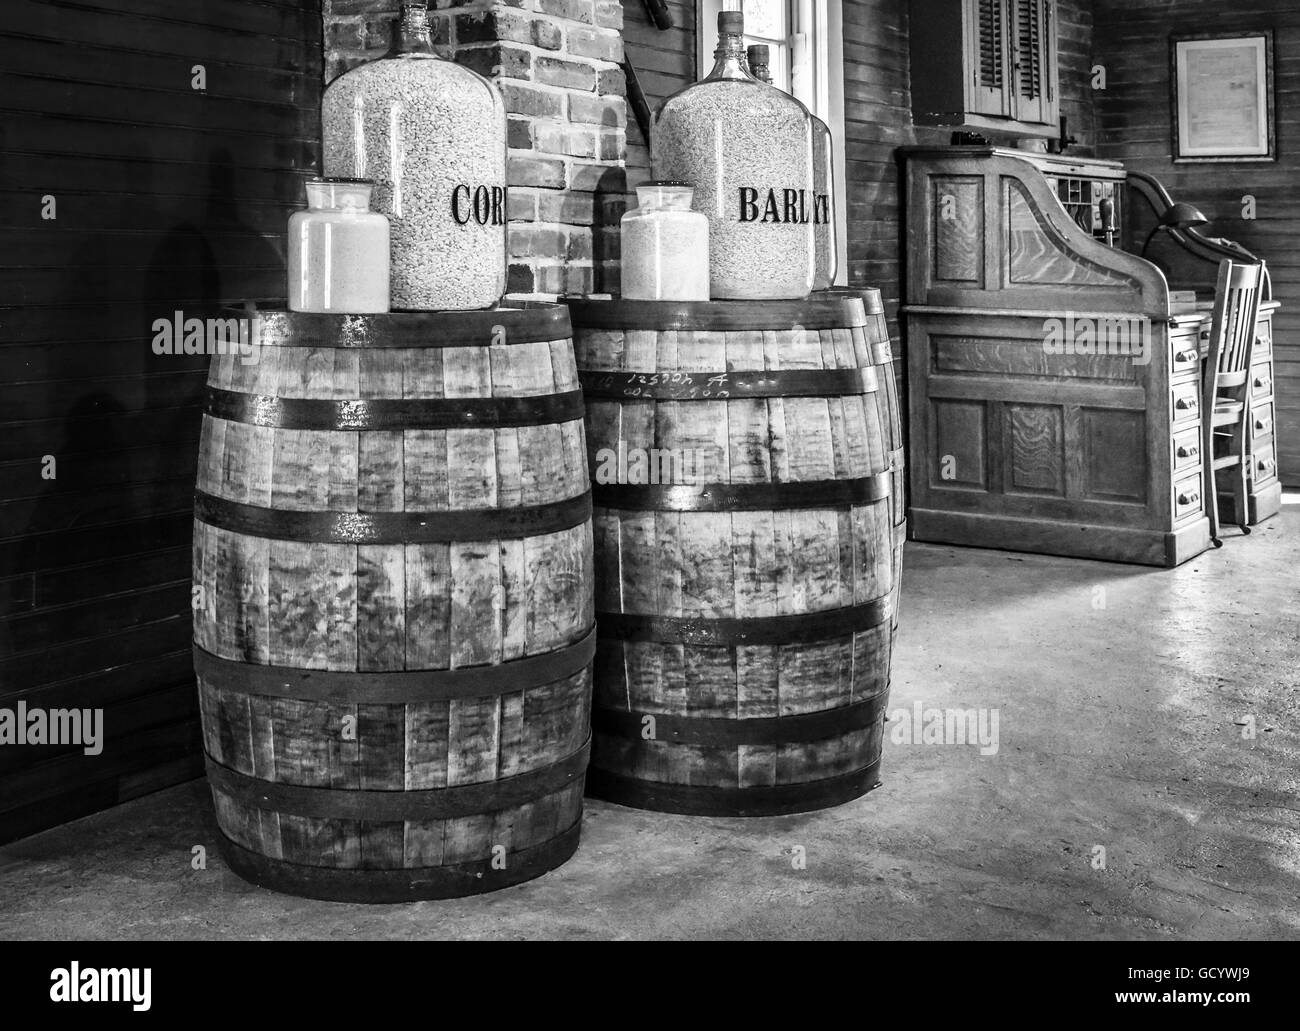 Corn & Barley jugs atop two authentic, aged oak barrels with metal bands and secretary furniture within a vintage - Stock Image